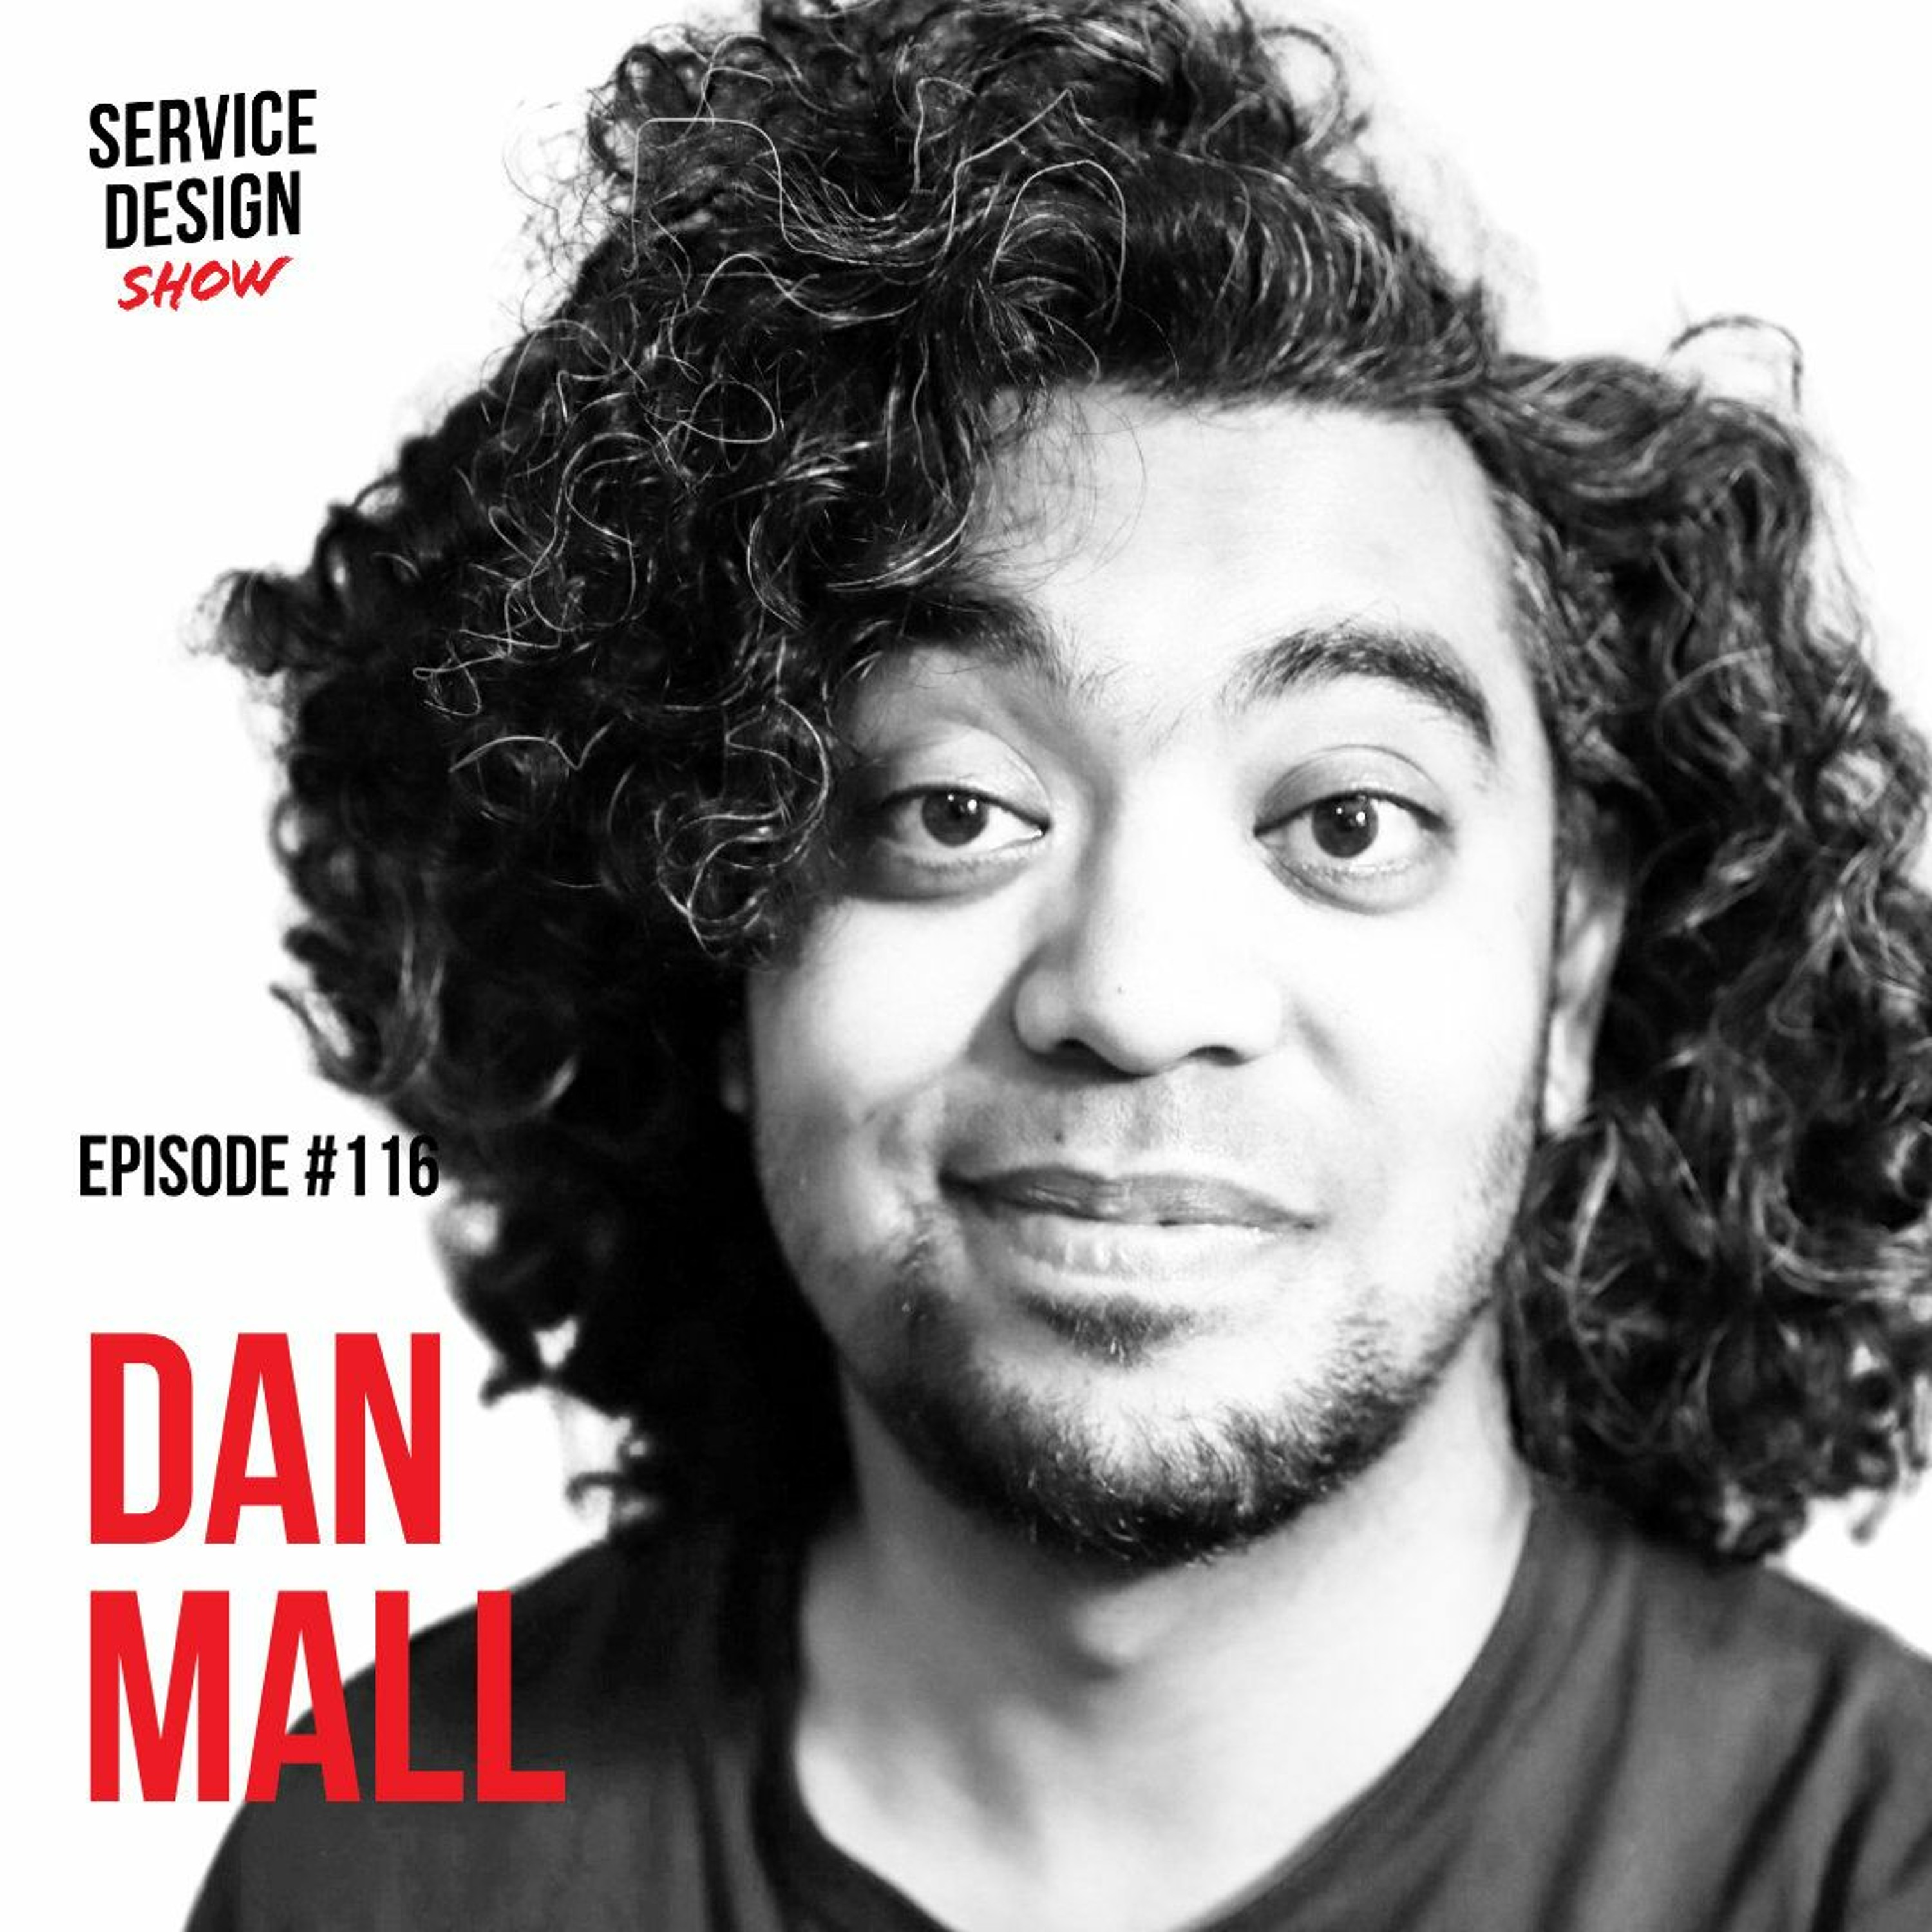 Exploring design systems for services / Dan Mall / Episode #116